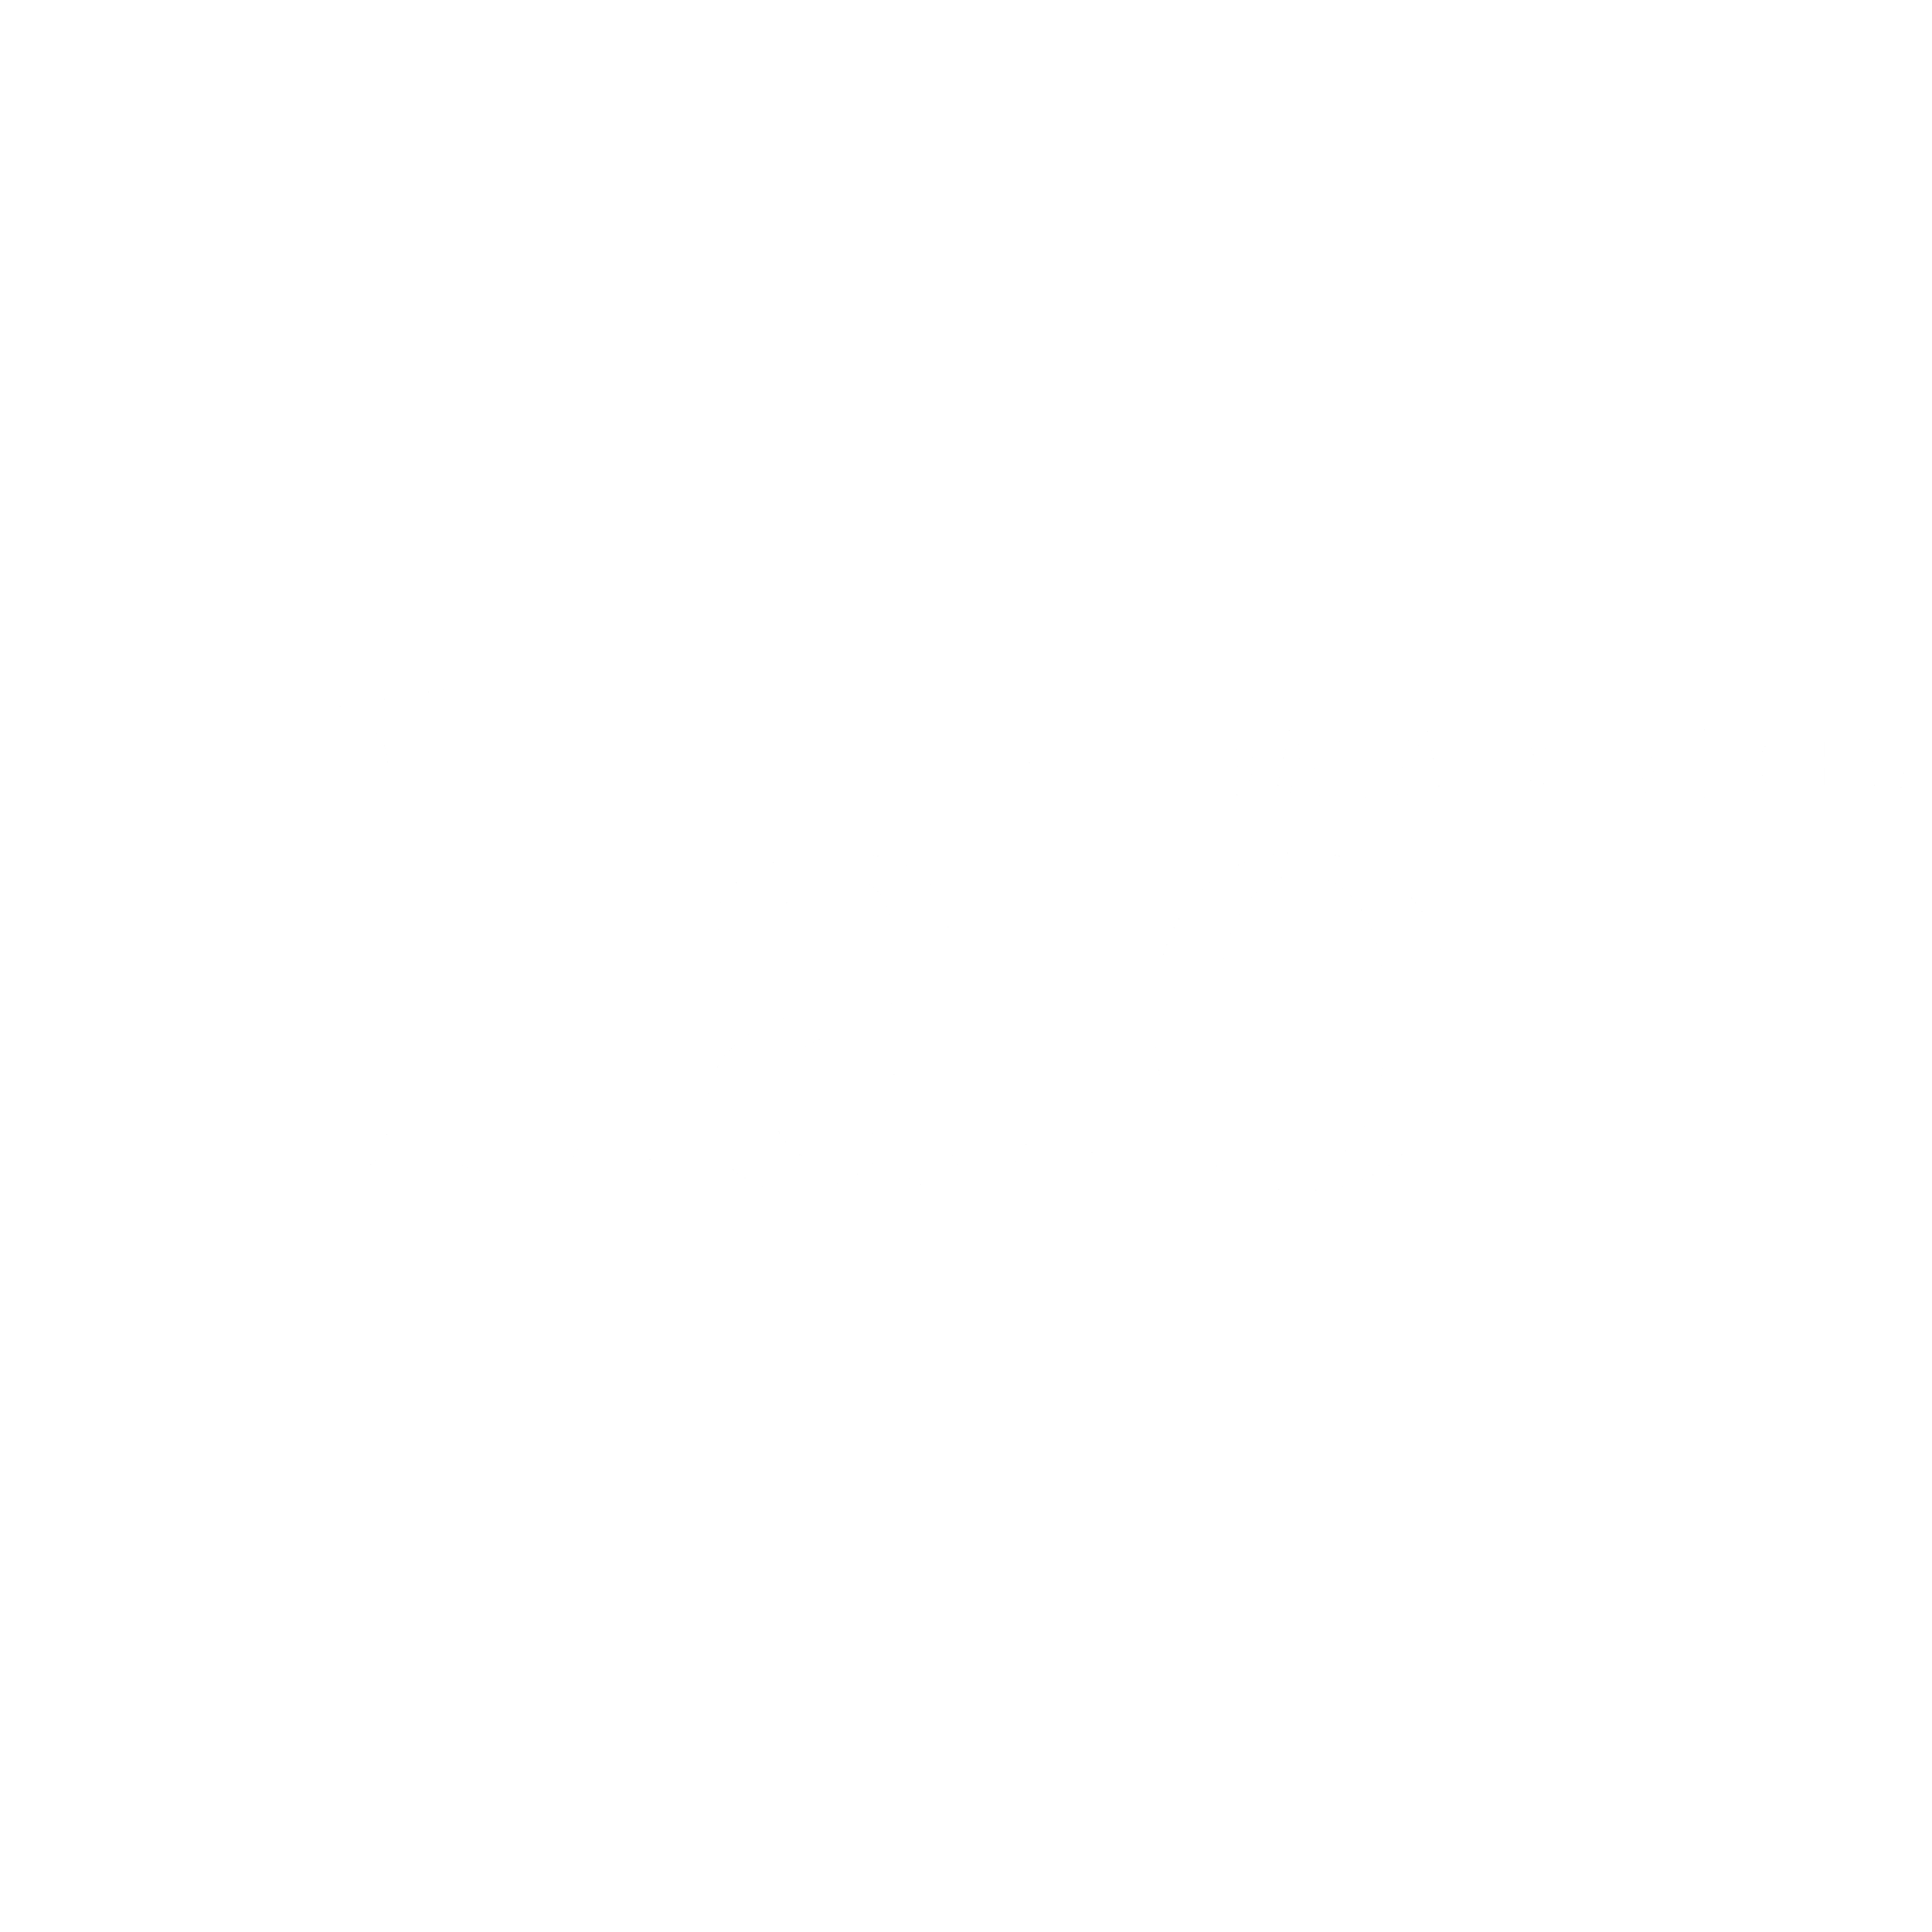 Download Halo Png Transparent Png Gif Base Download and use them in your website, document or presentation. download halo png transparent png